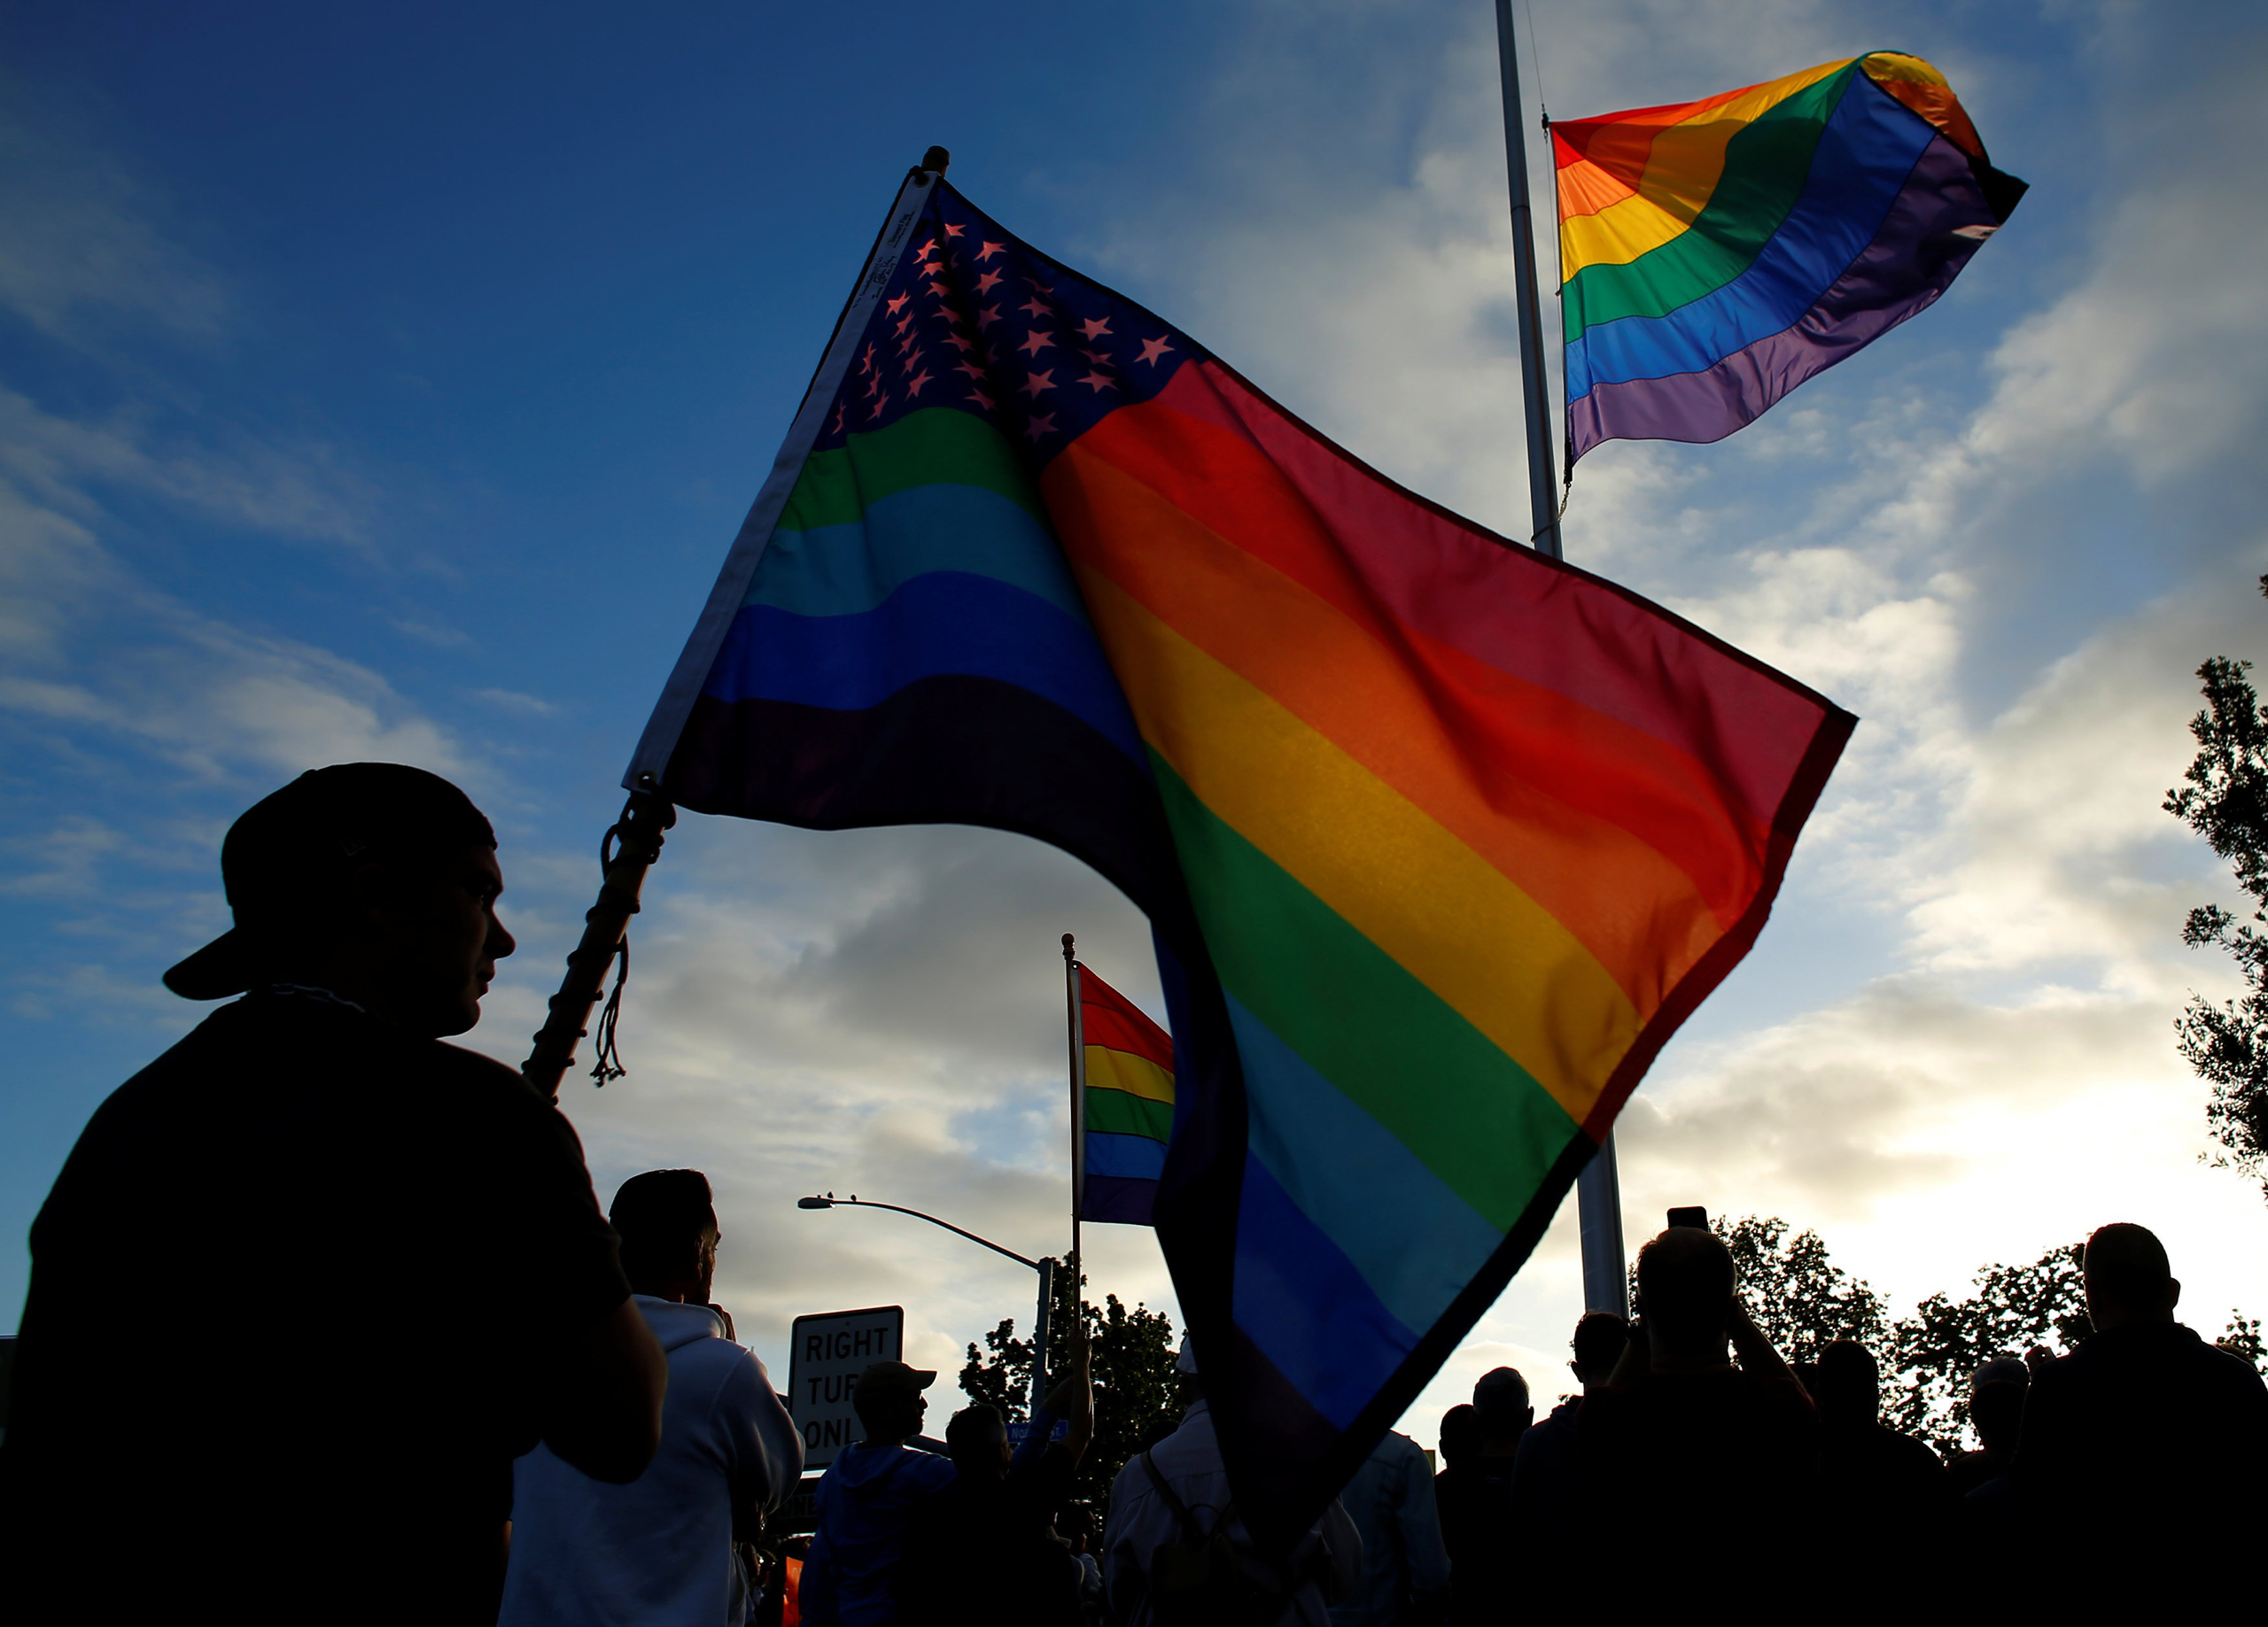 Mourners gather under an LGBT pride flag flying at half-mast for a candlelight vigil in remembrance for mass shooting victims in Orlando, in San Diego, Calif. on June 12, 2016.